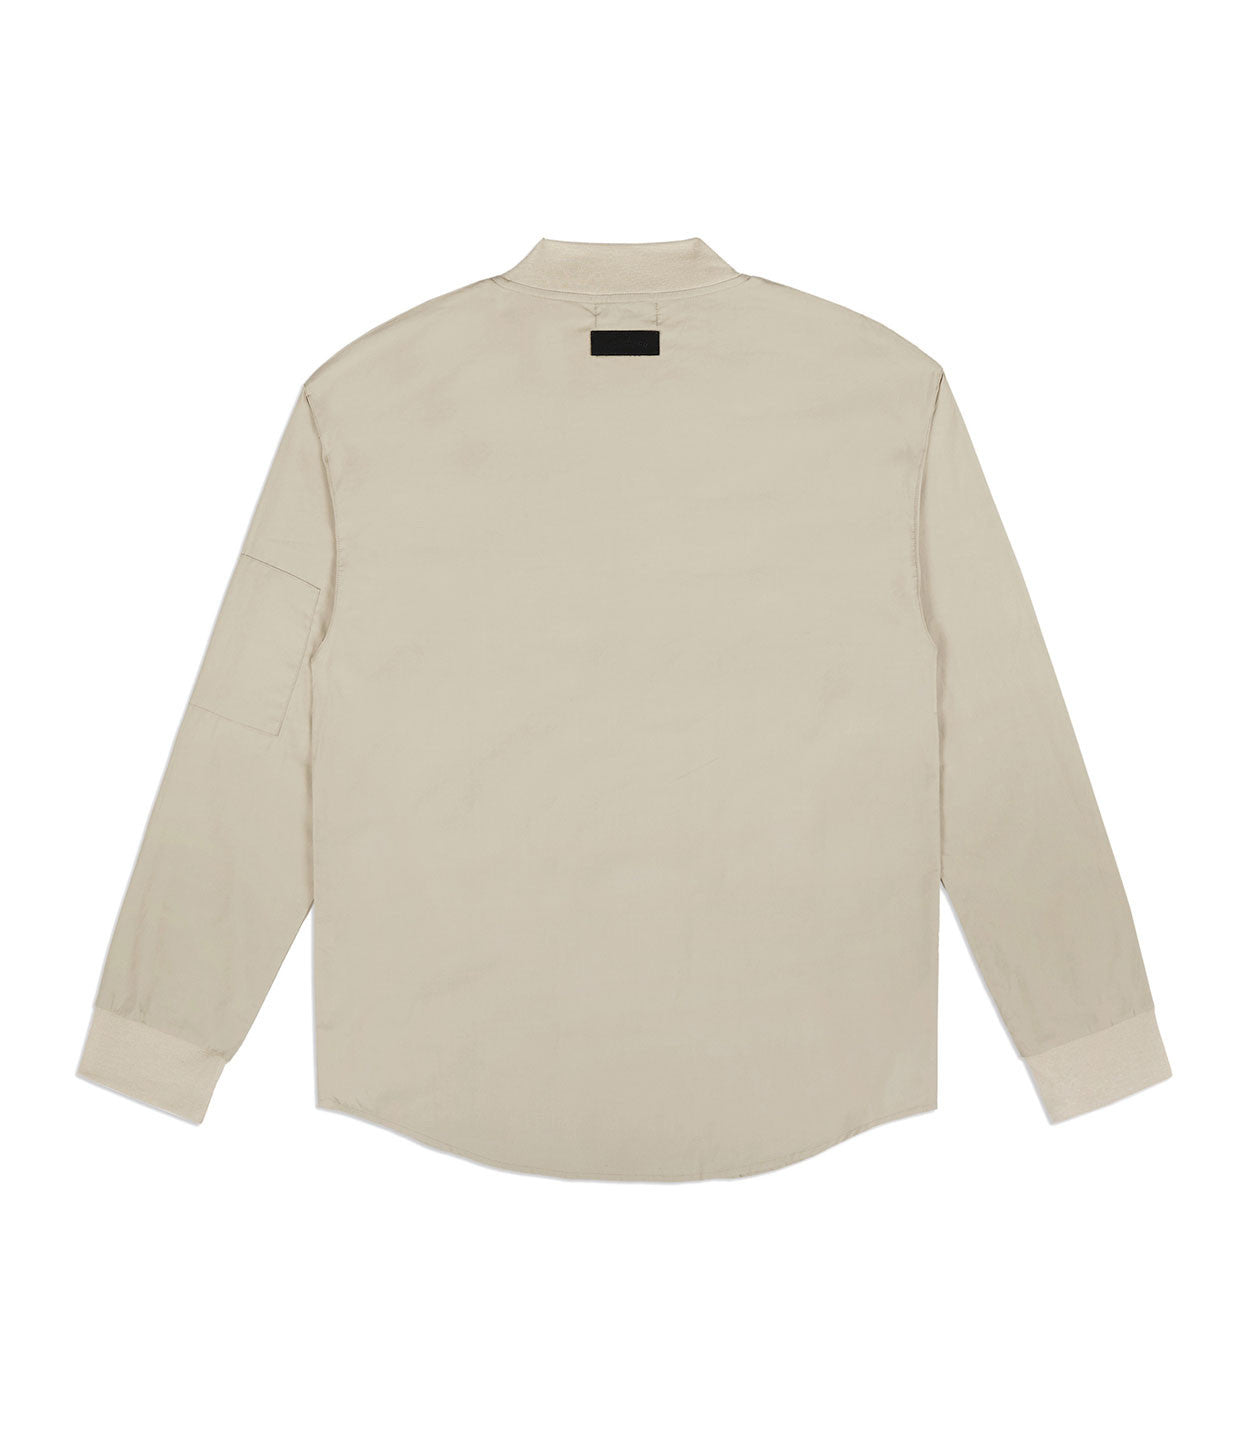 SH357 Bomber Shirt - Sand - underated london - underatedco - 5